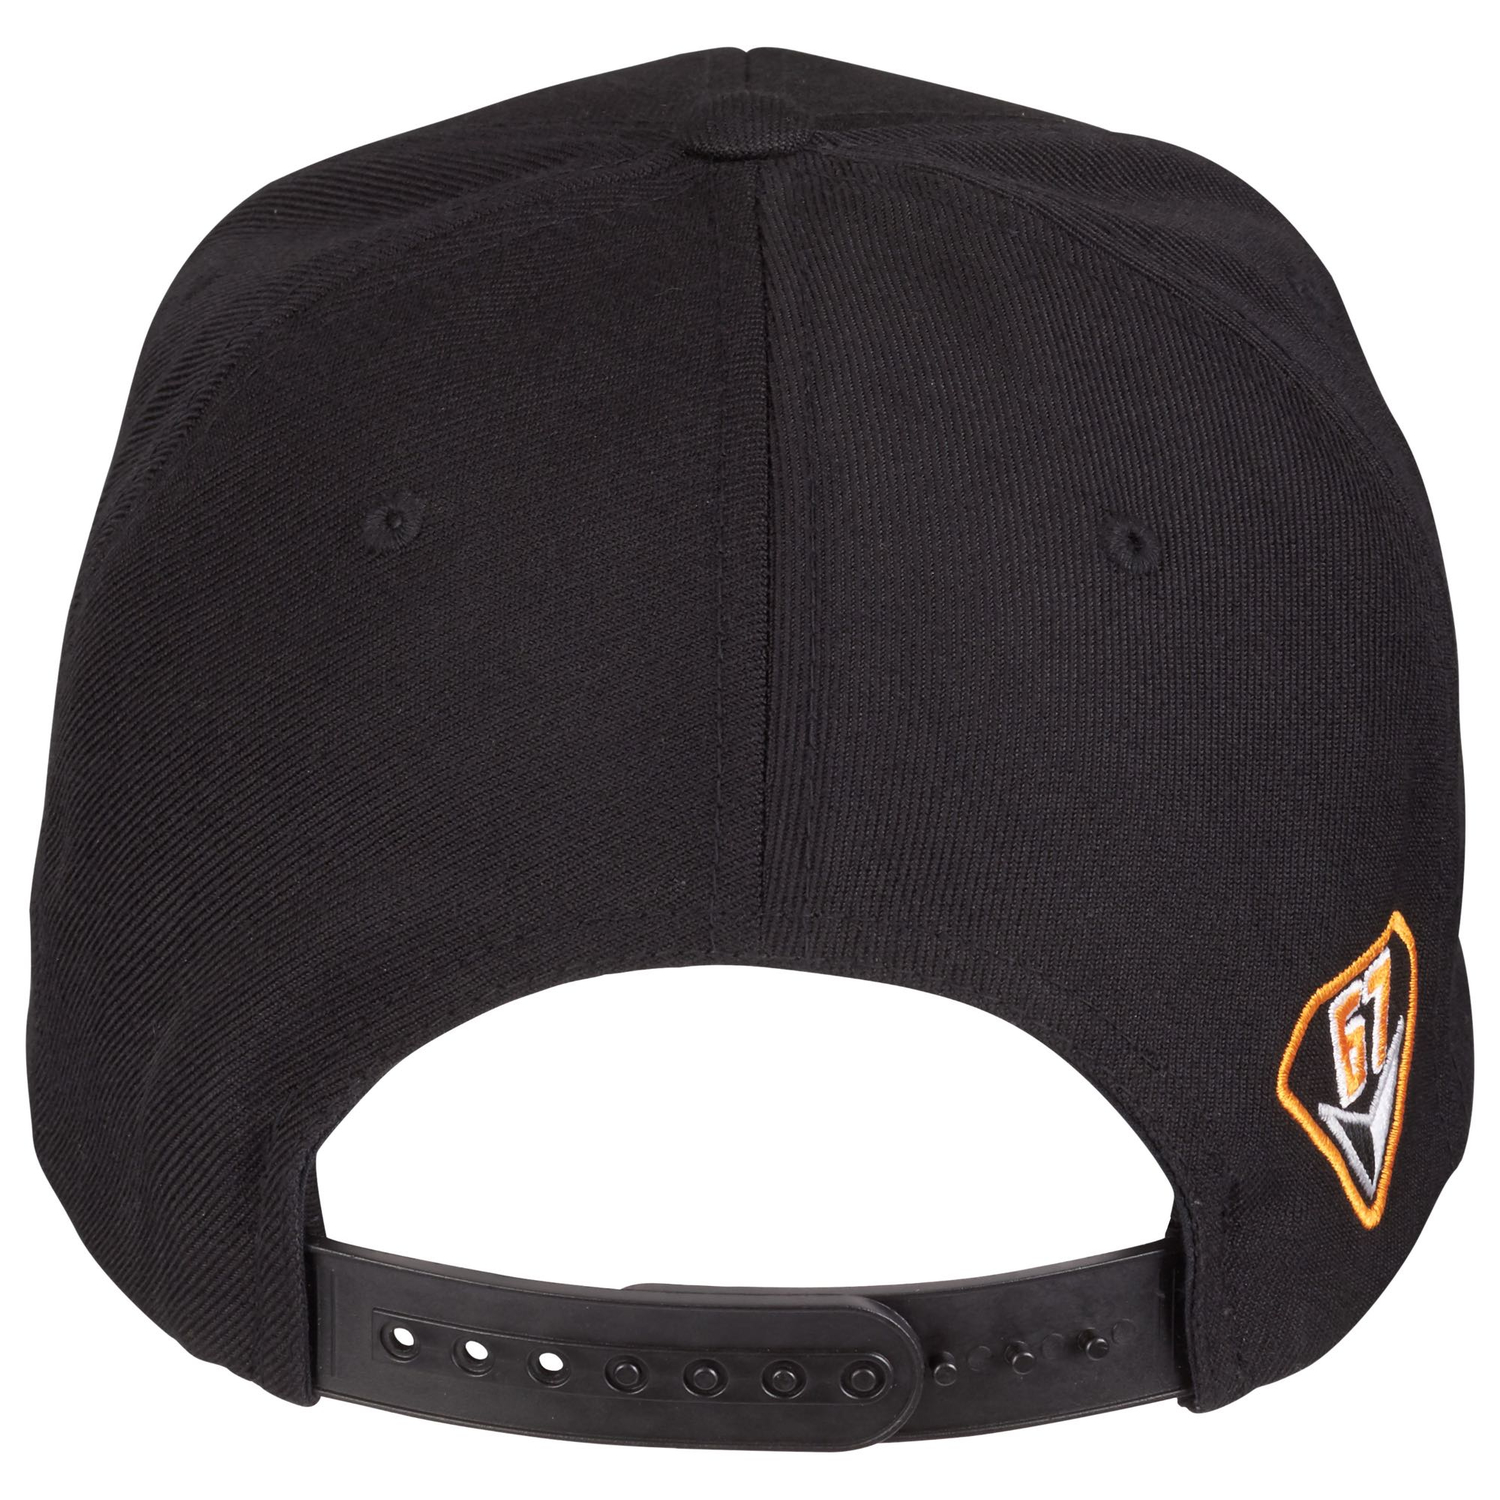 CAP WITH STRAIGT VISOR